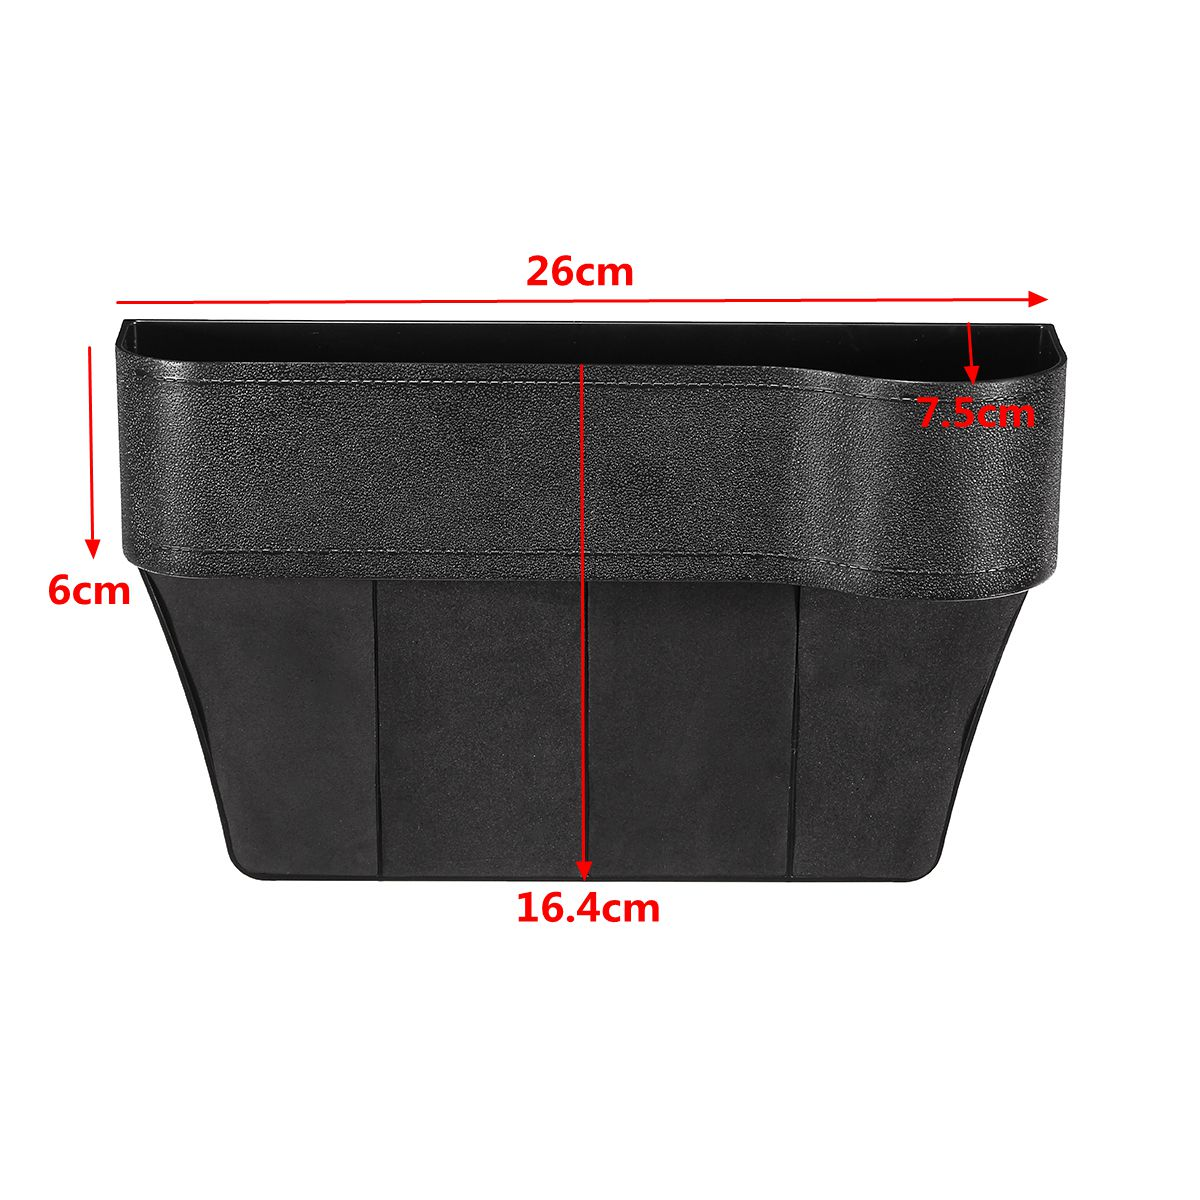 ABS Right Side Car Seat Crevice Gap Storage Box Drink Holder Pocket Coin Organizer